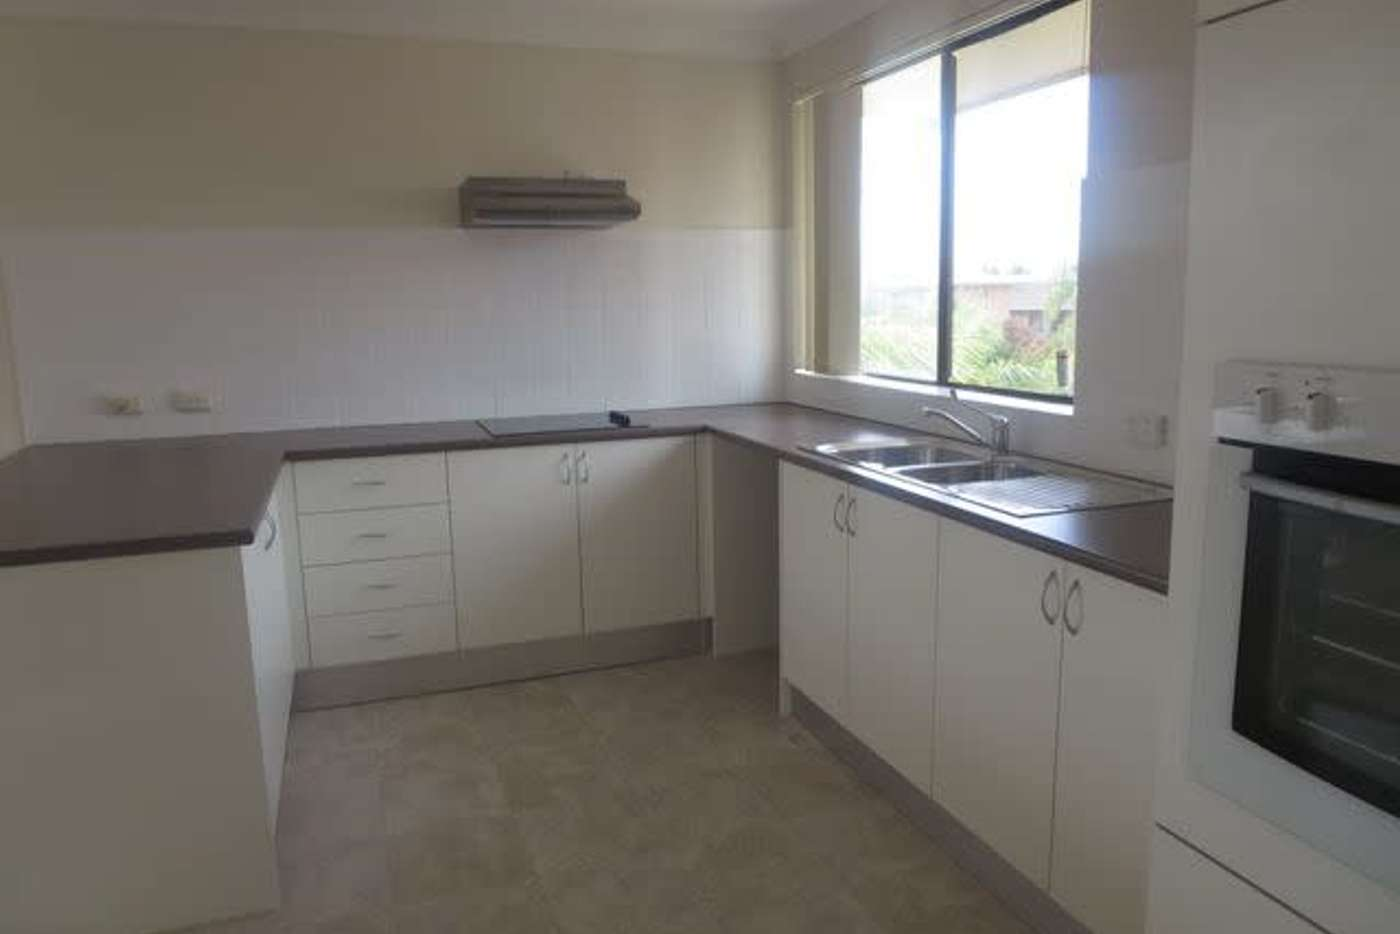 Main view of Homely unit listing, 5/17 Duet Drive, Mermaid Waters QLD 4218